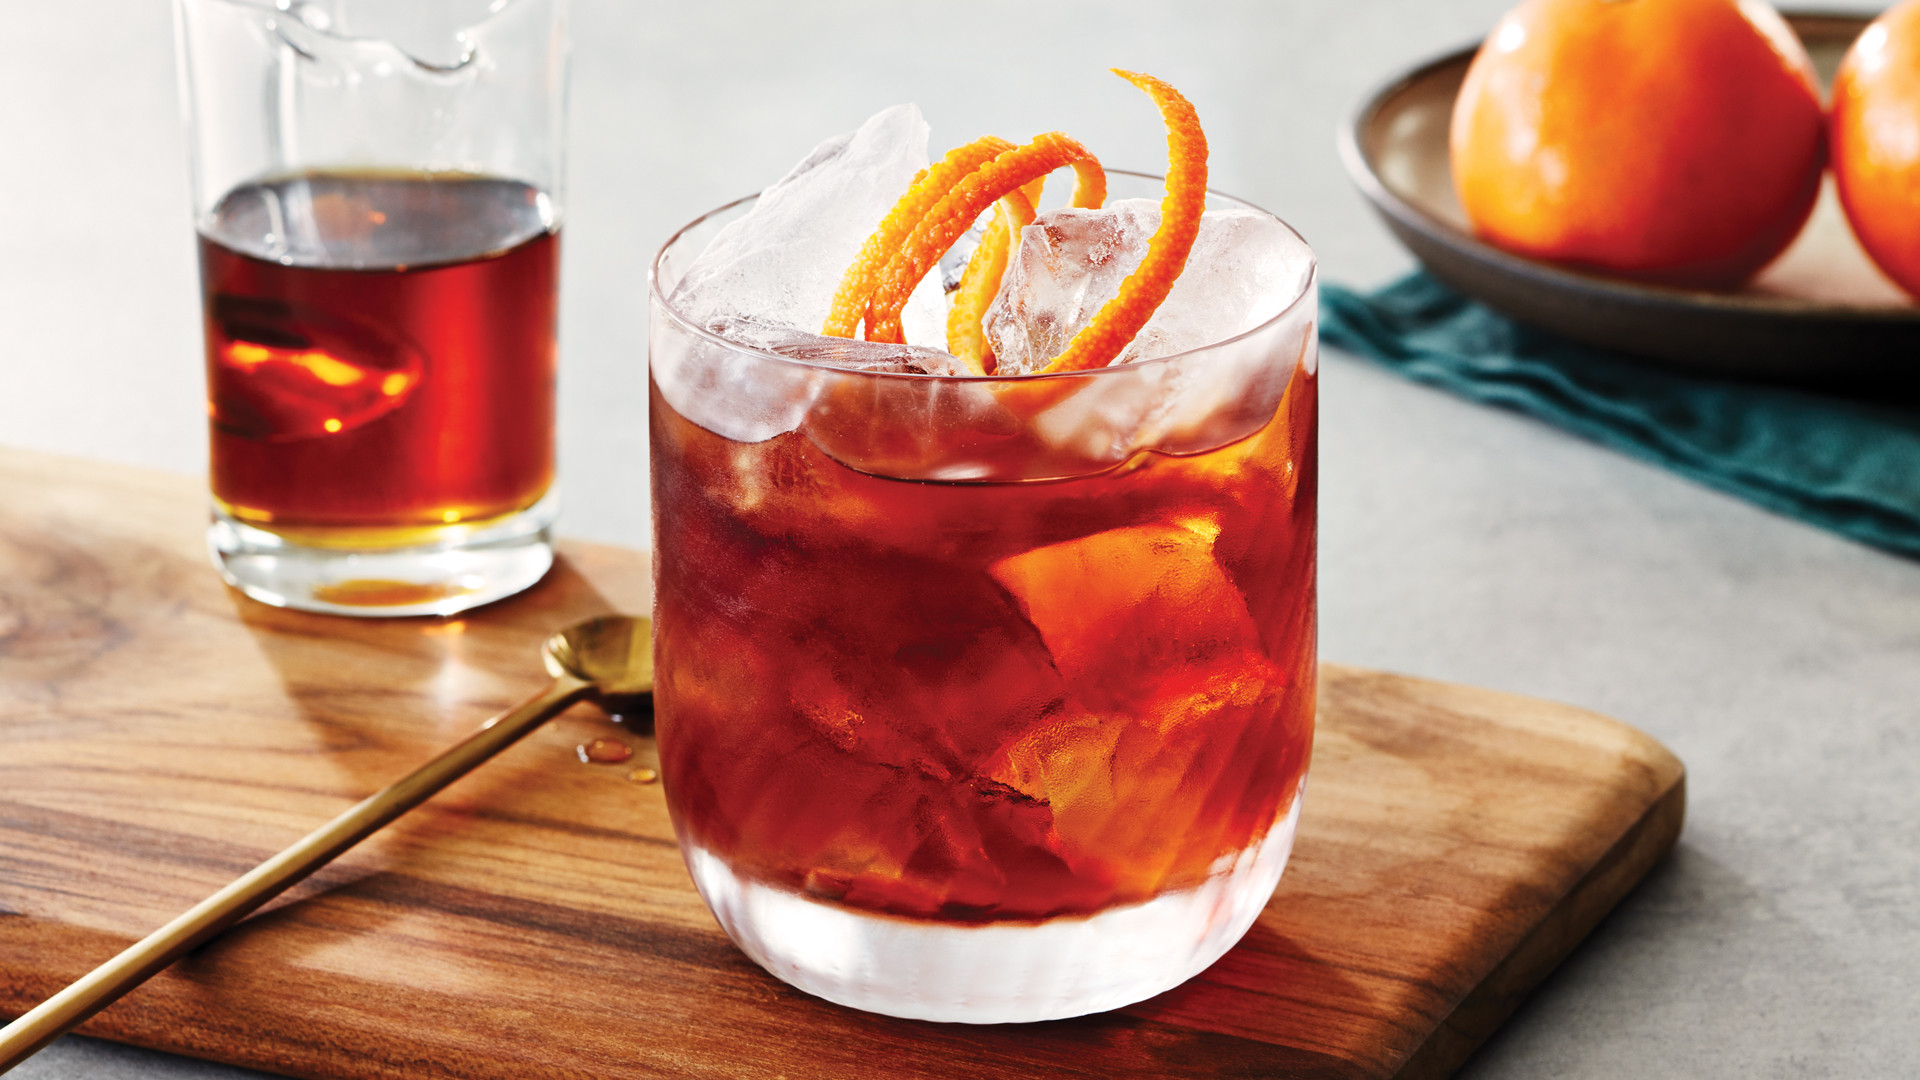 5 of the best whisky gifts at LCBO   An old fashioned with whisky